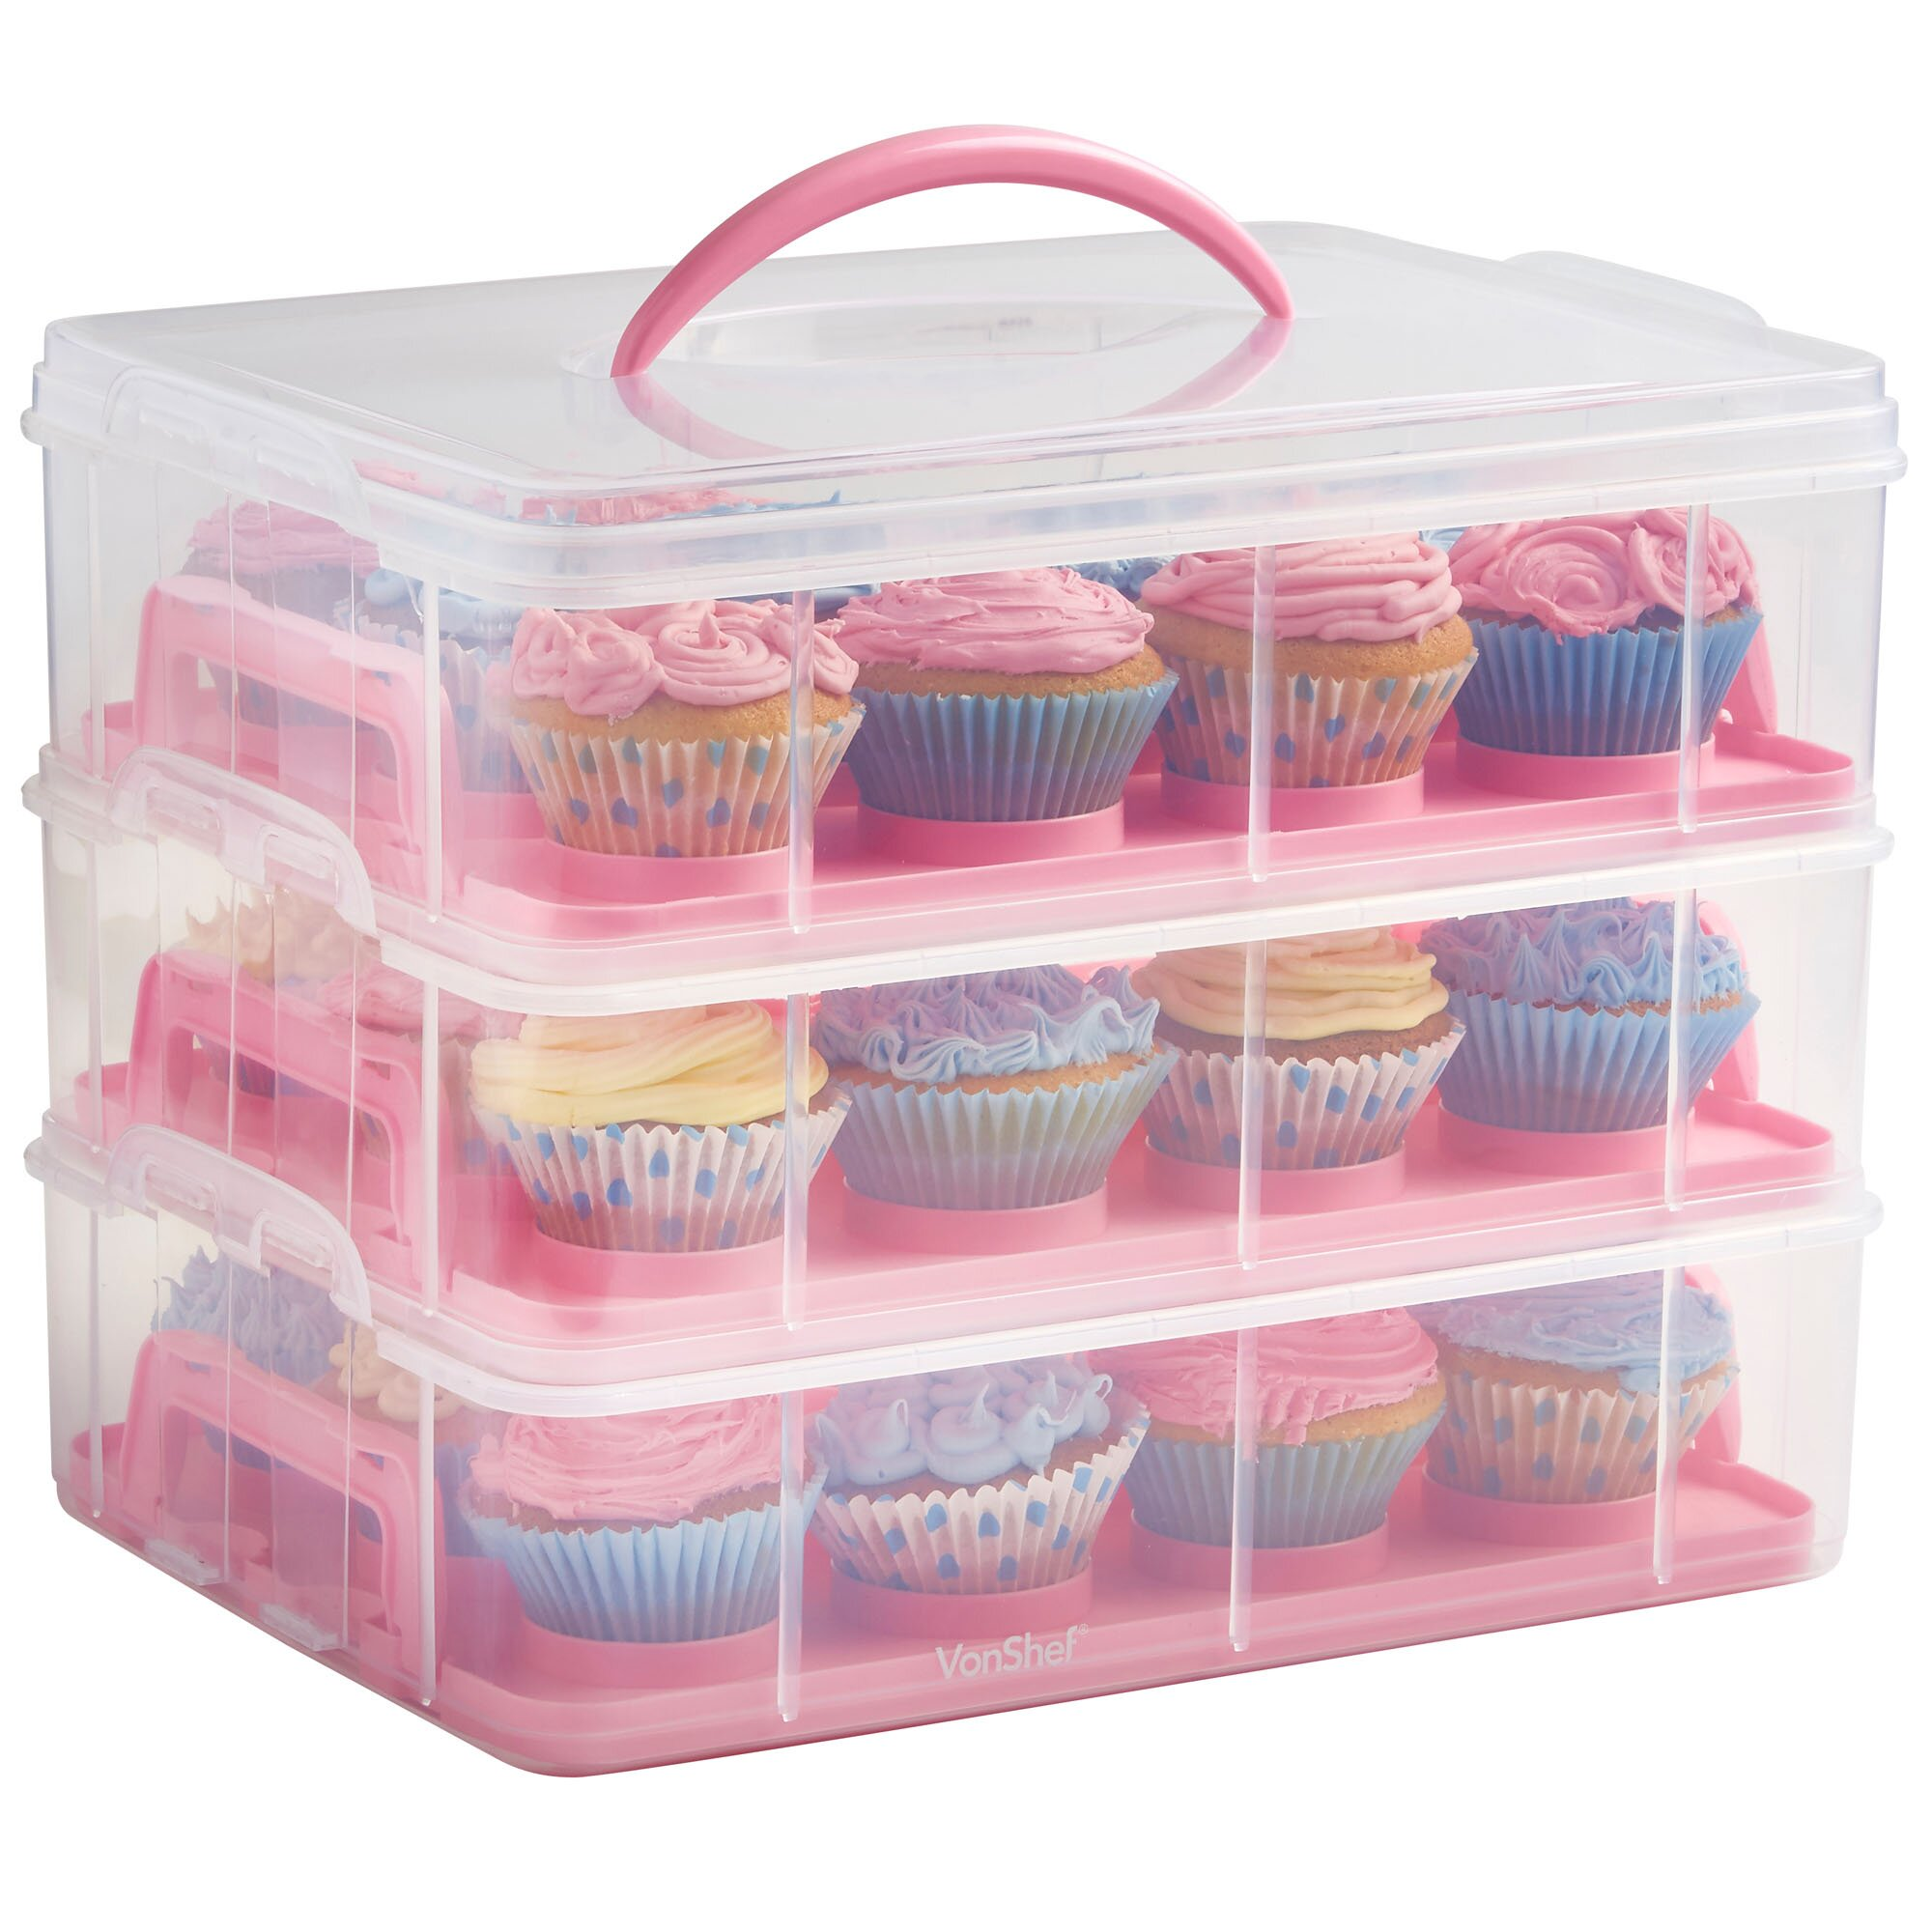 Vonshef 3 Tier Cupcake Holder And Carrier Container